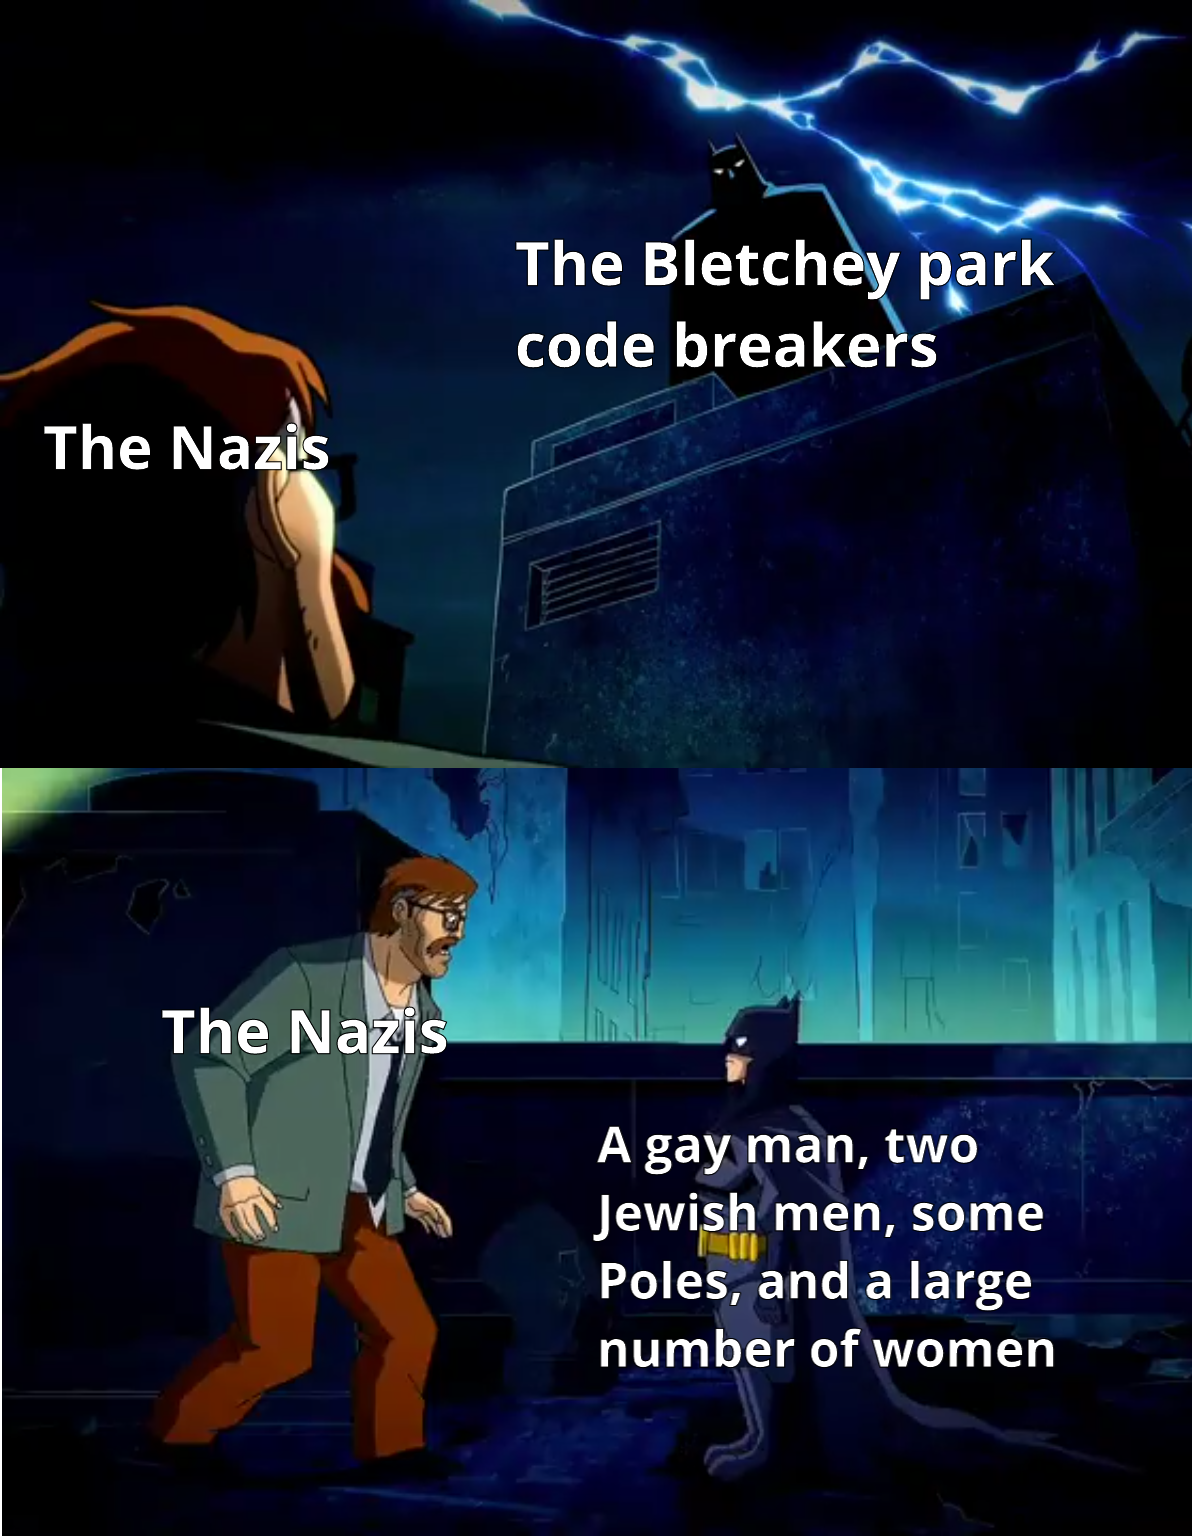 The Nazis believed only the most Aryan men alive could have broken their code... they were a *little* off.